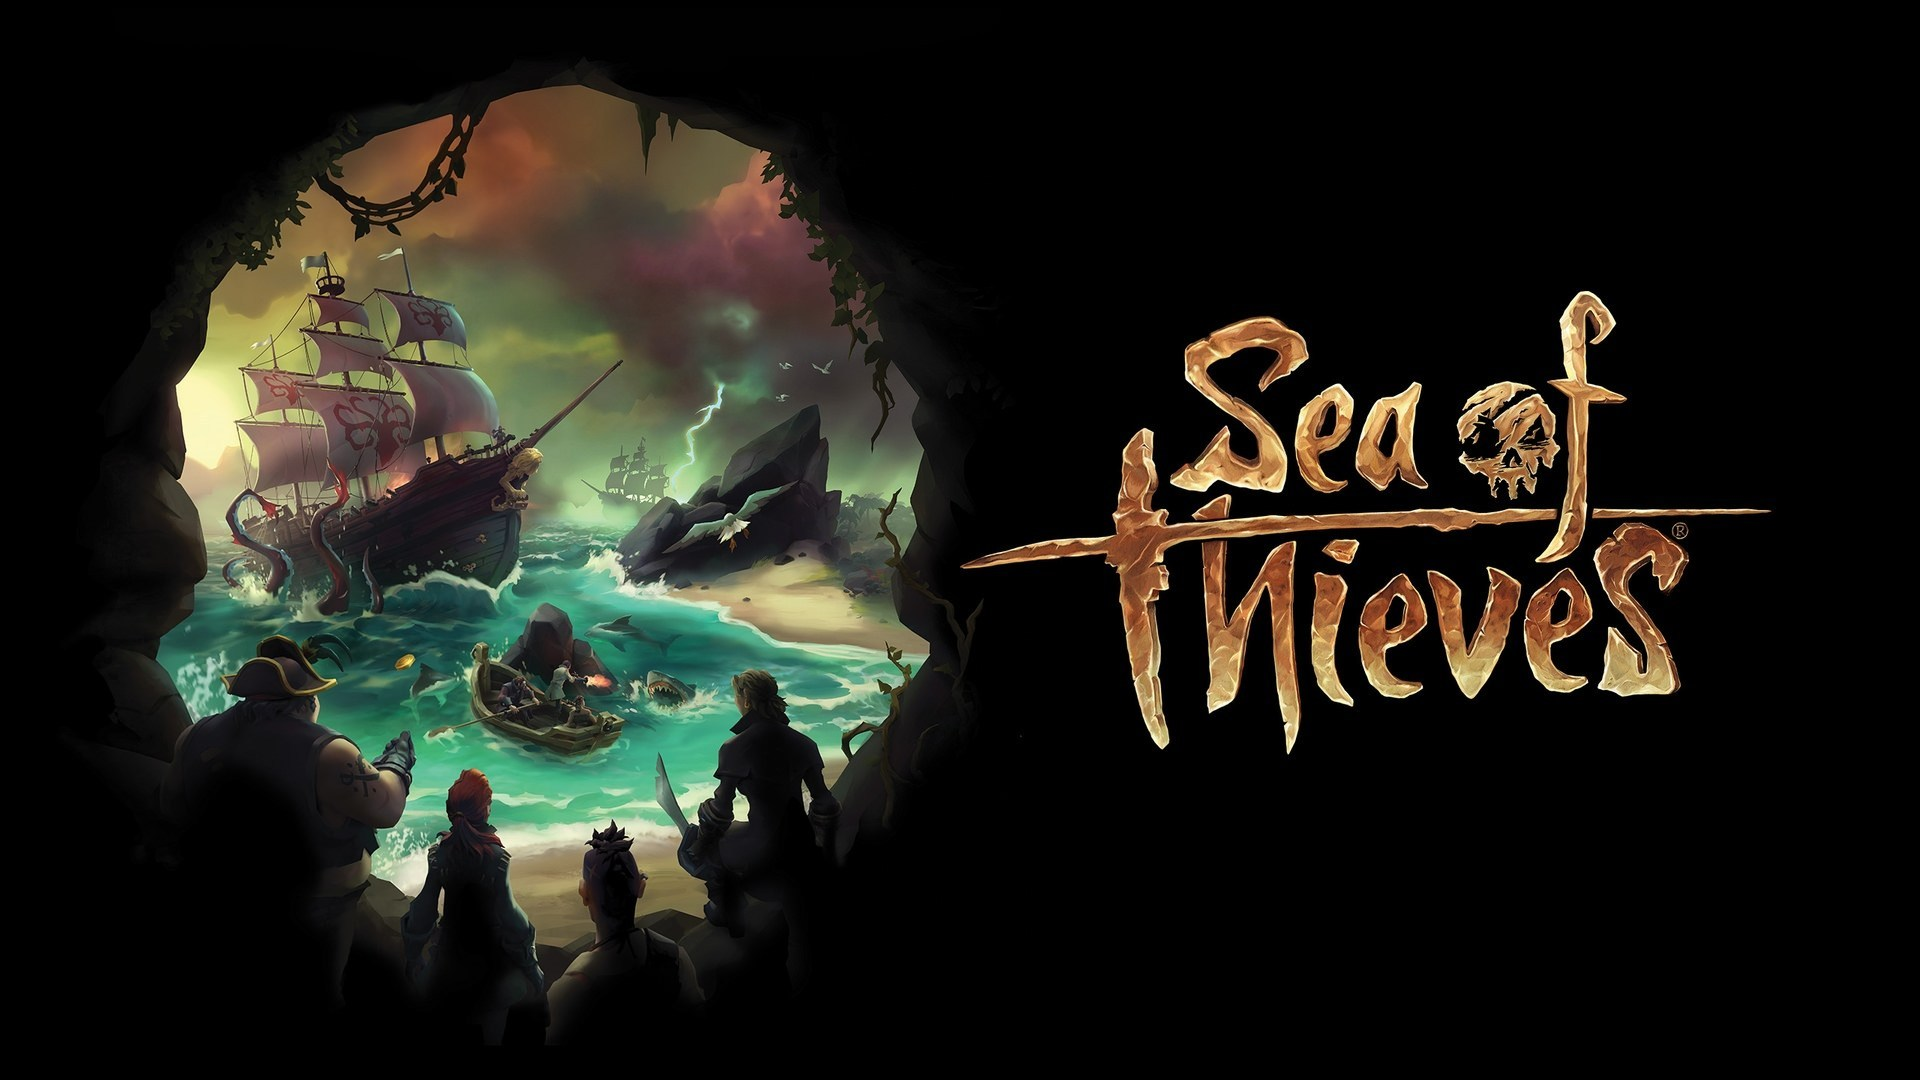 Sea of Thieves: Anniversary Edition – The Seabound Soul (Incl Hotfix) Free Download